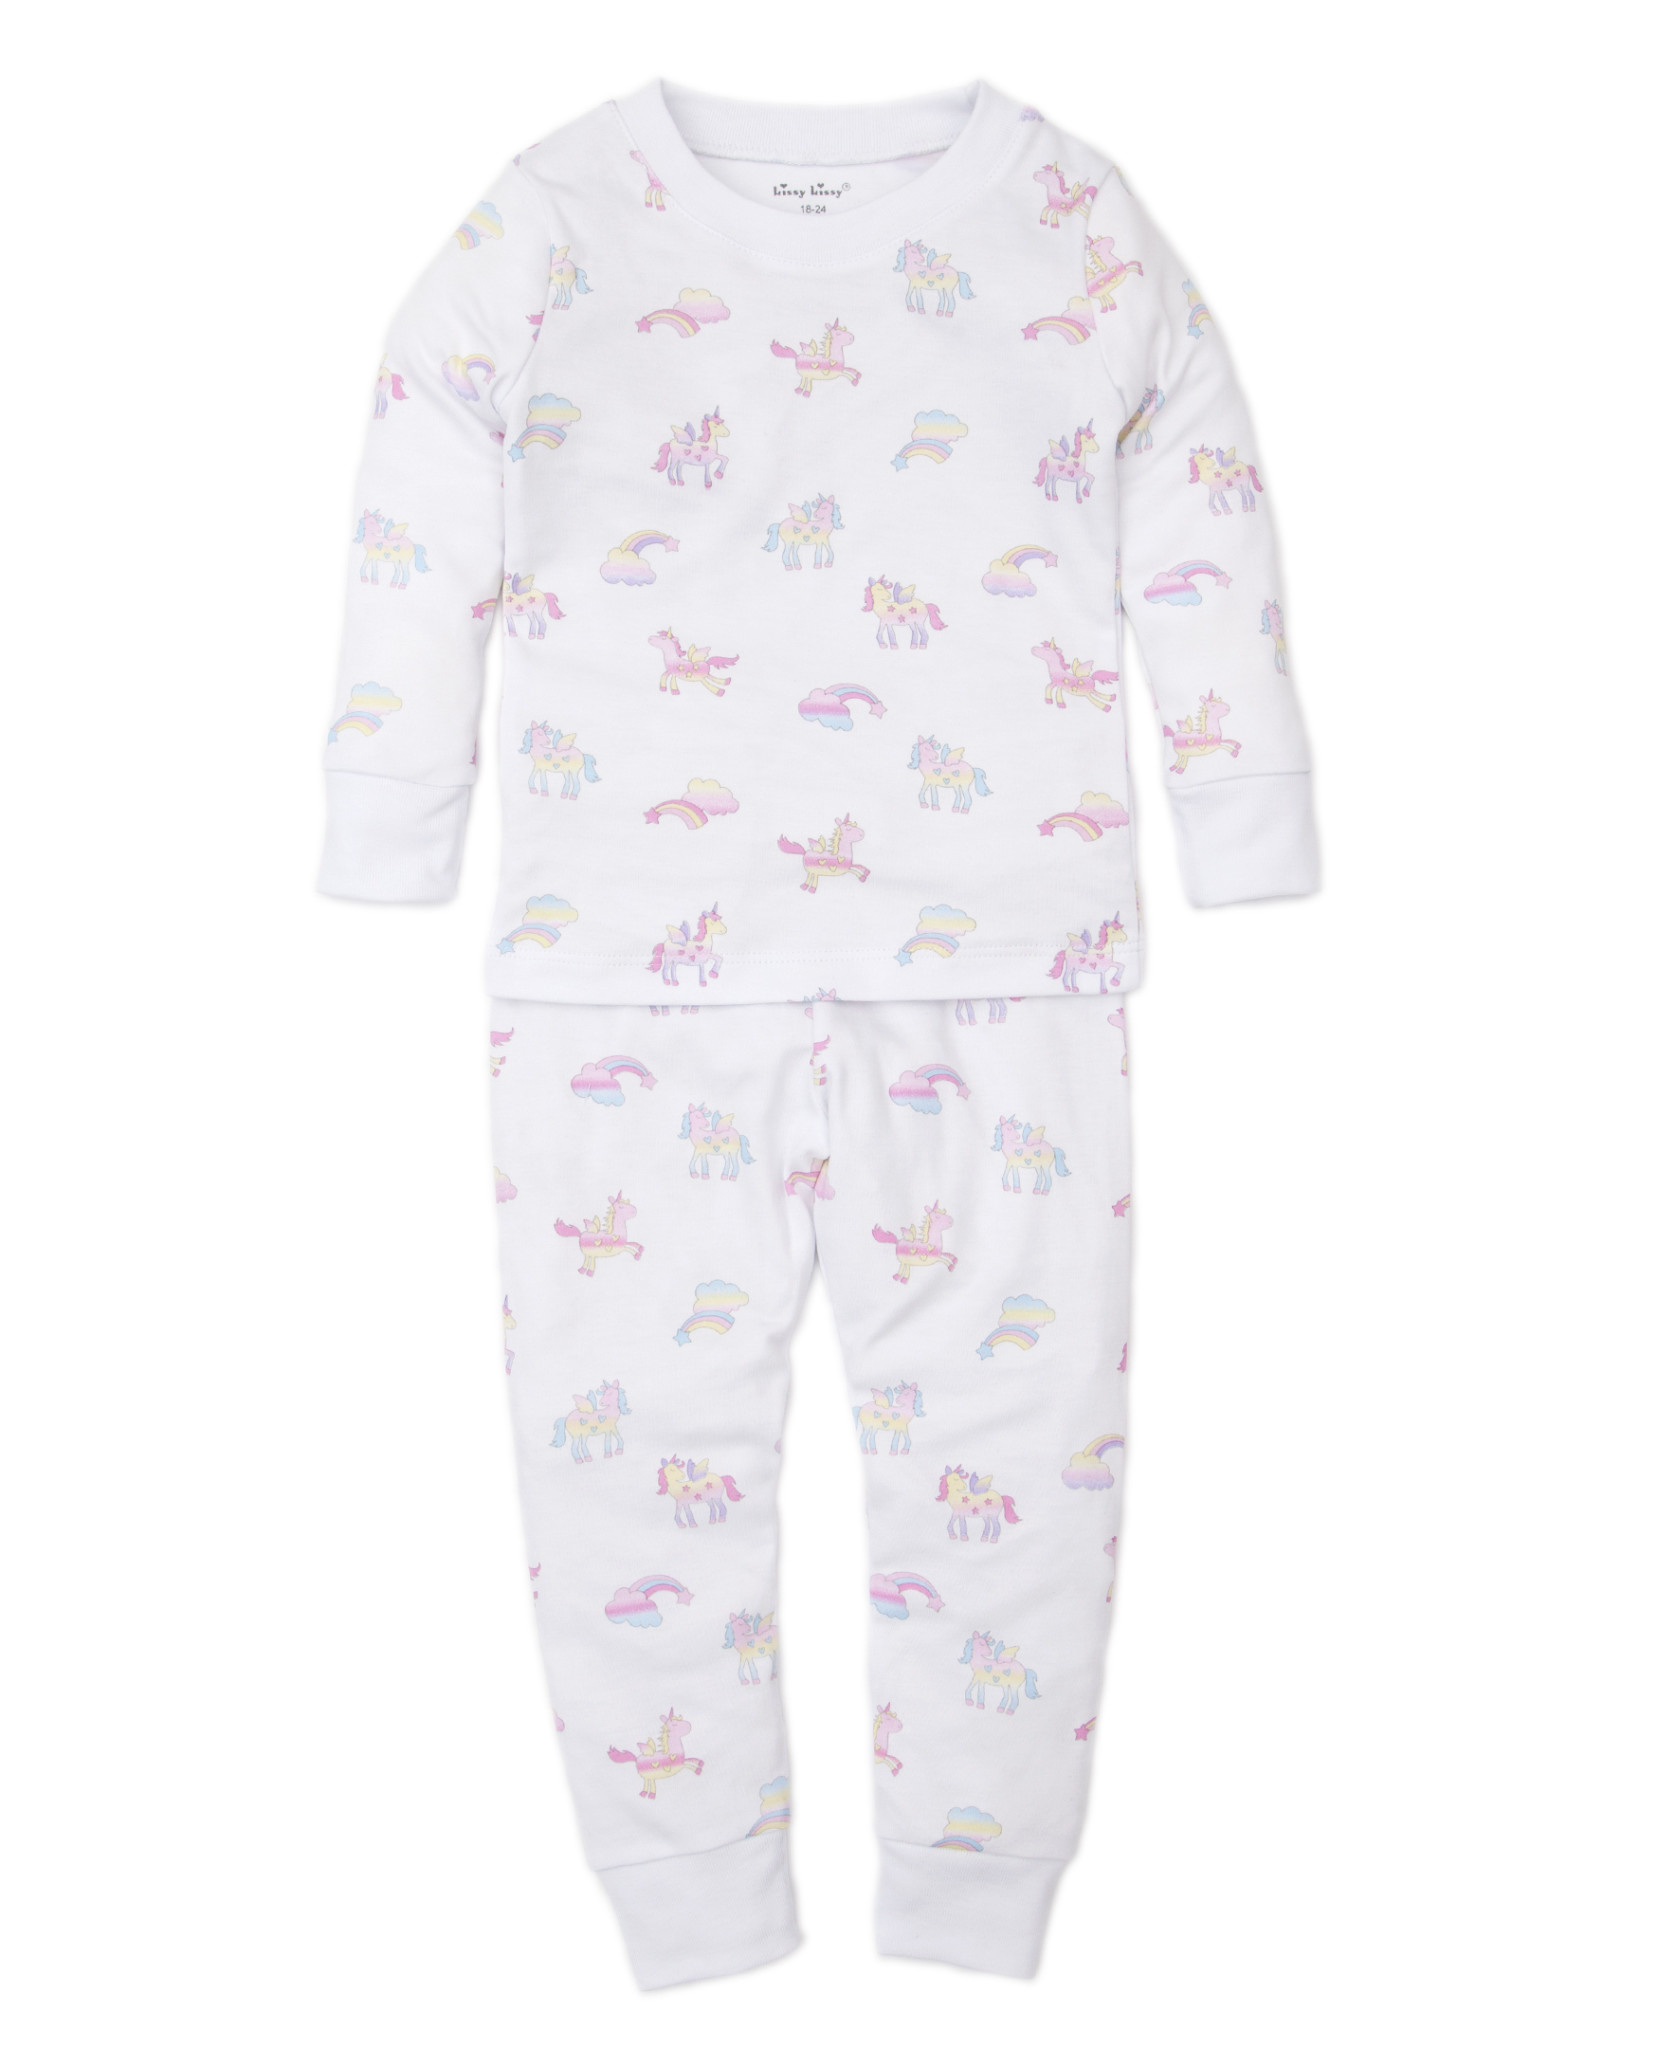 Kissy Kissy Unicorn Utopia Toddler Pajamas